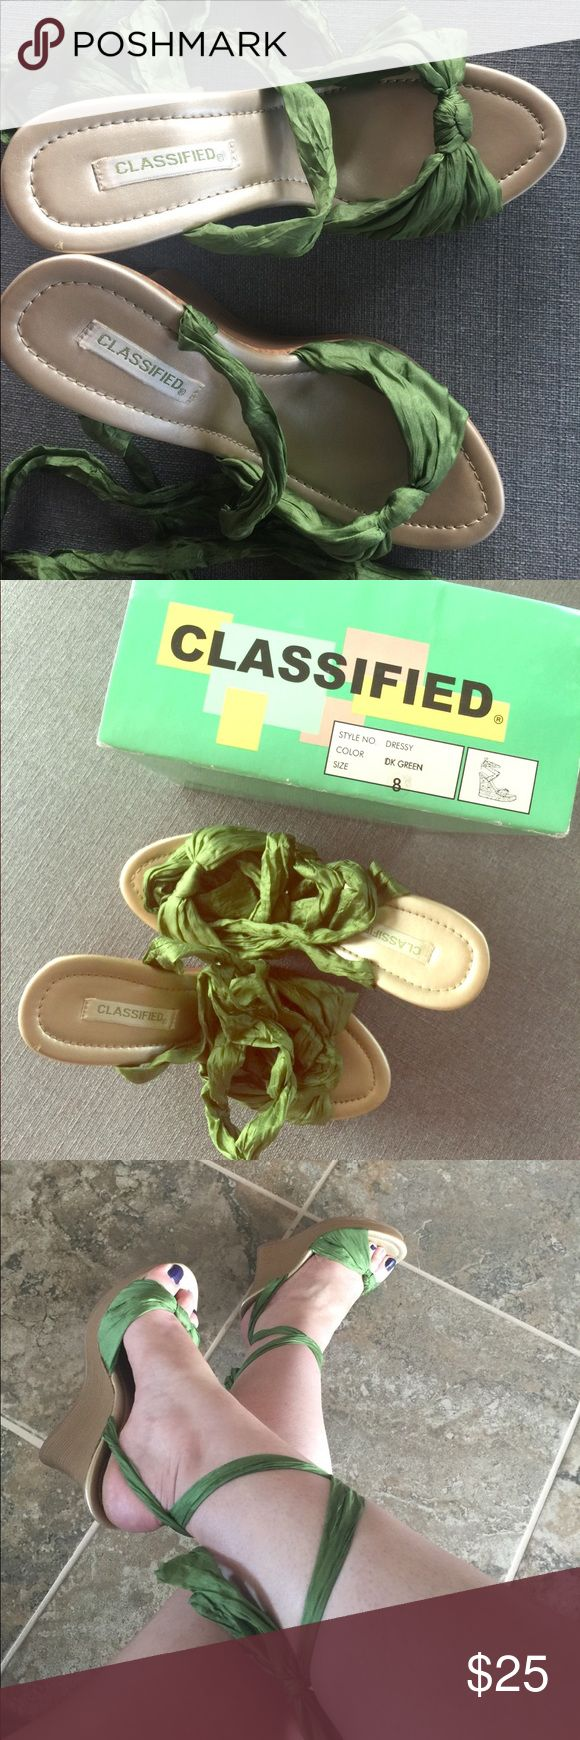 Classified green wedges size 8 These silky ribbon Classified brand dark green wedges size 8 will dress up any summer outfit! Like new classified Shoes Wedges